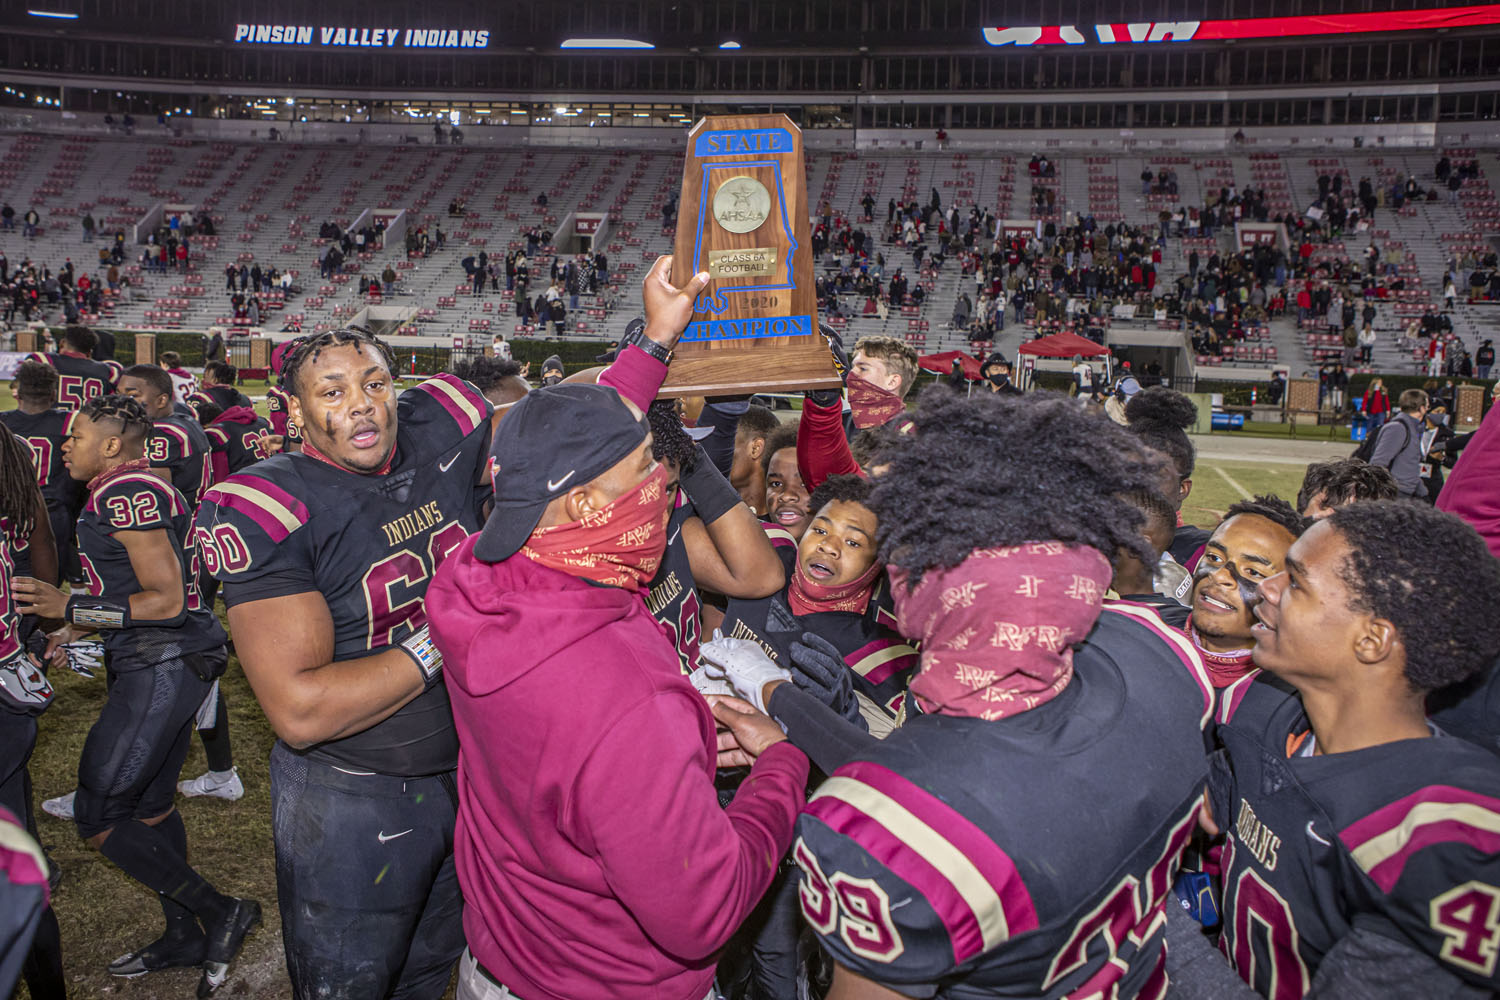 Pinson Valley captures 3rd state championship in 4 years